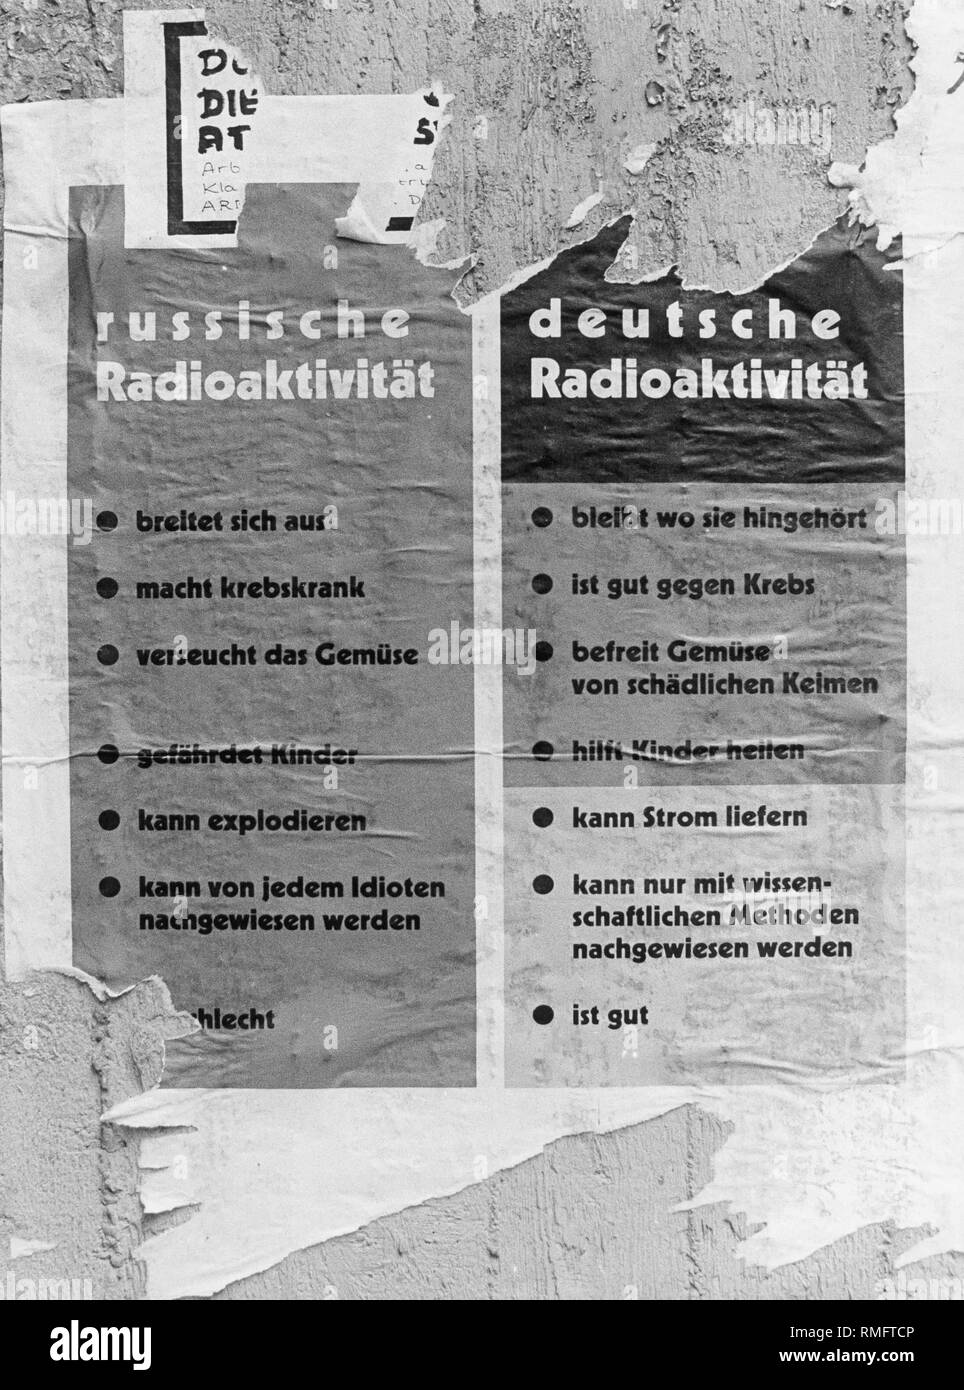 A comparison of Russian and German radioactivity in response to the political statement following the Chernobyl nuclear disaster. - Stock Image